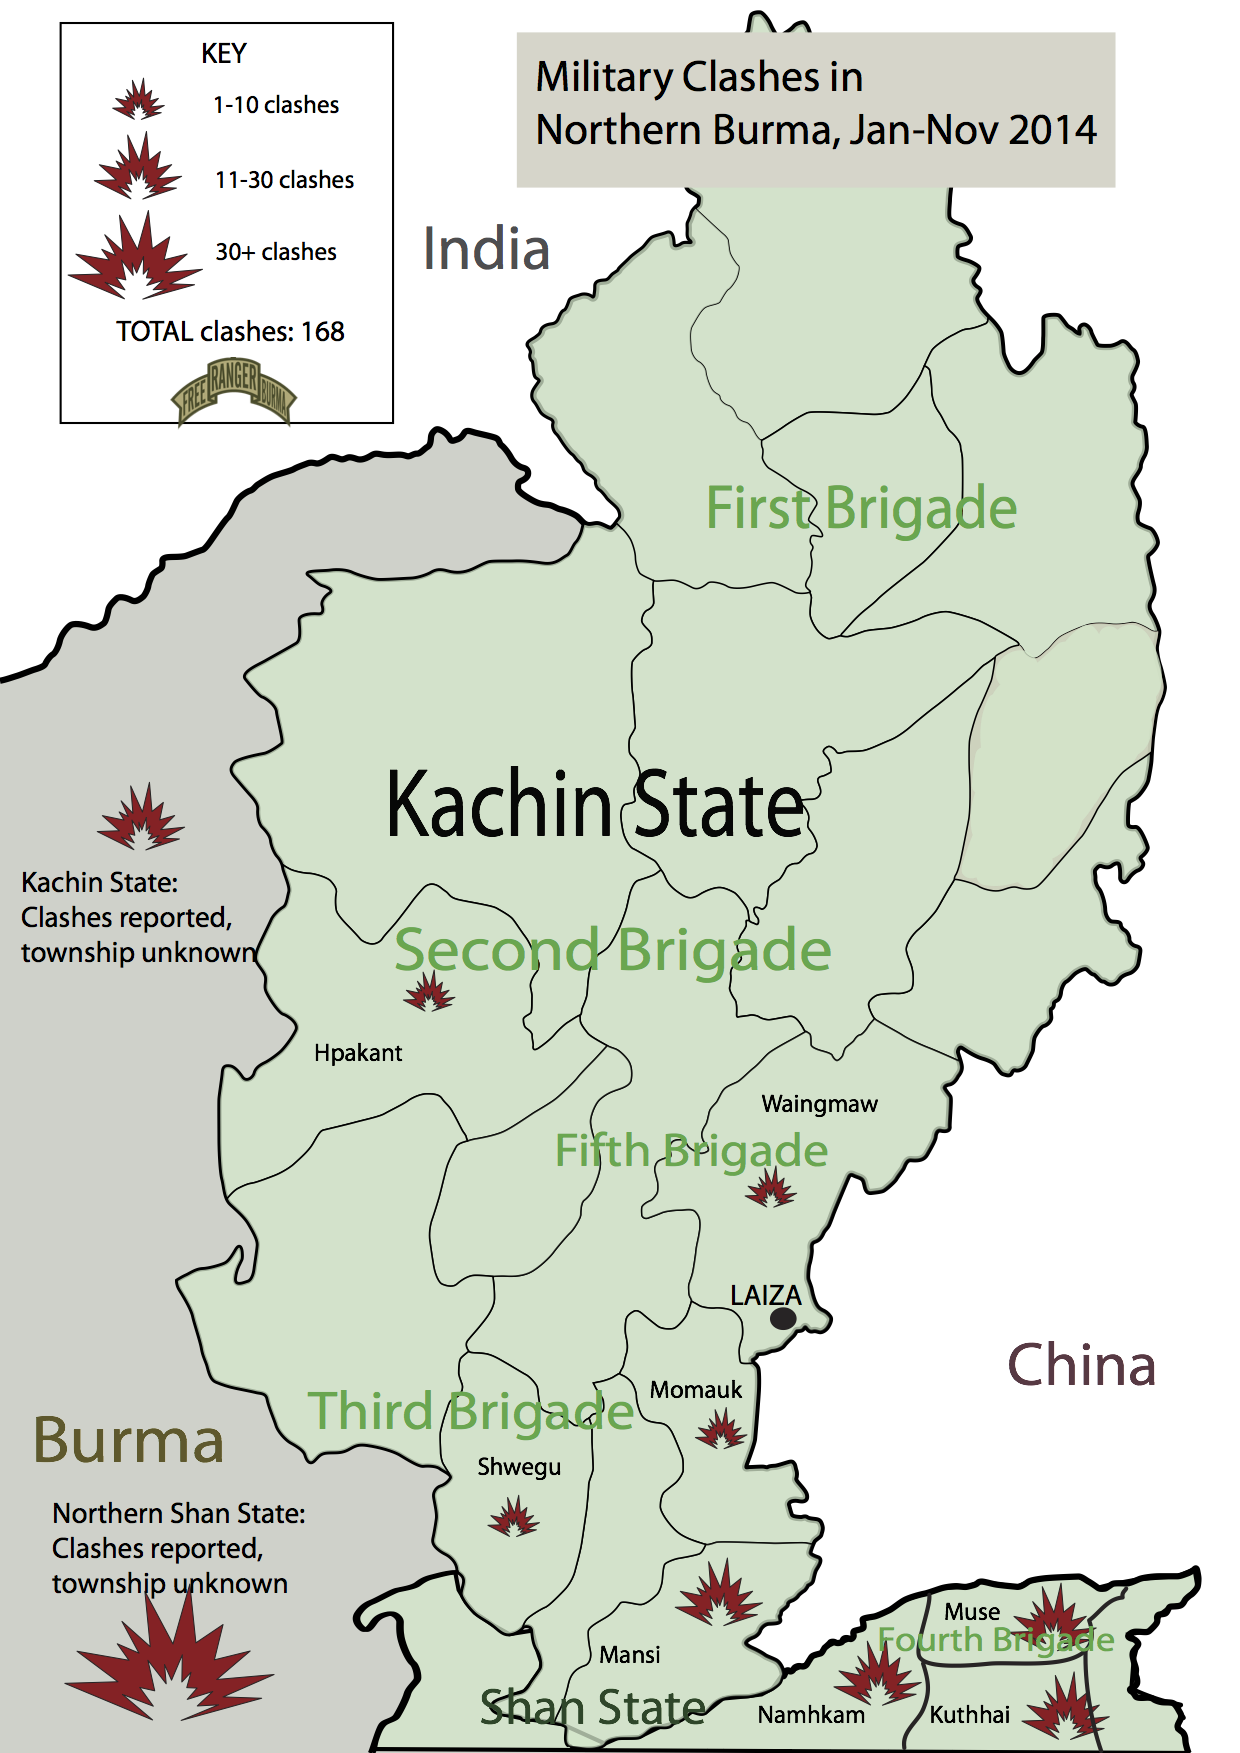 Map of conflict zones in Northern Shan State and Kachin ... Shan State Map Myanmar on mon state myanmar map, kachin state map, chin state myanmar map, shan state army south, military bases washington state map, kayin state myanmar map, glen falls new york state map, idaho state map, lashio on map, northern new mexico map, shan state in thailand, rakhine state myanmar map, gongga shan china map, shan state 1942, shan state dress, altun shan map,